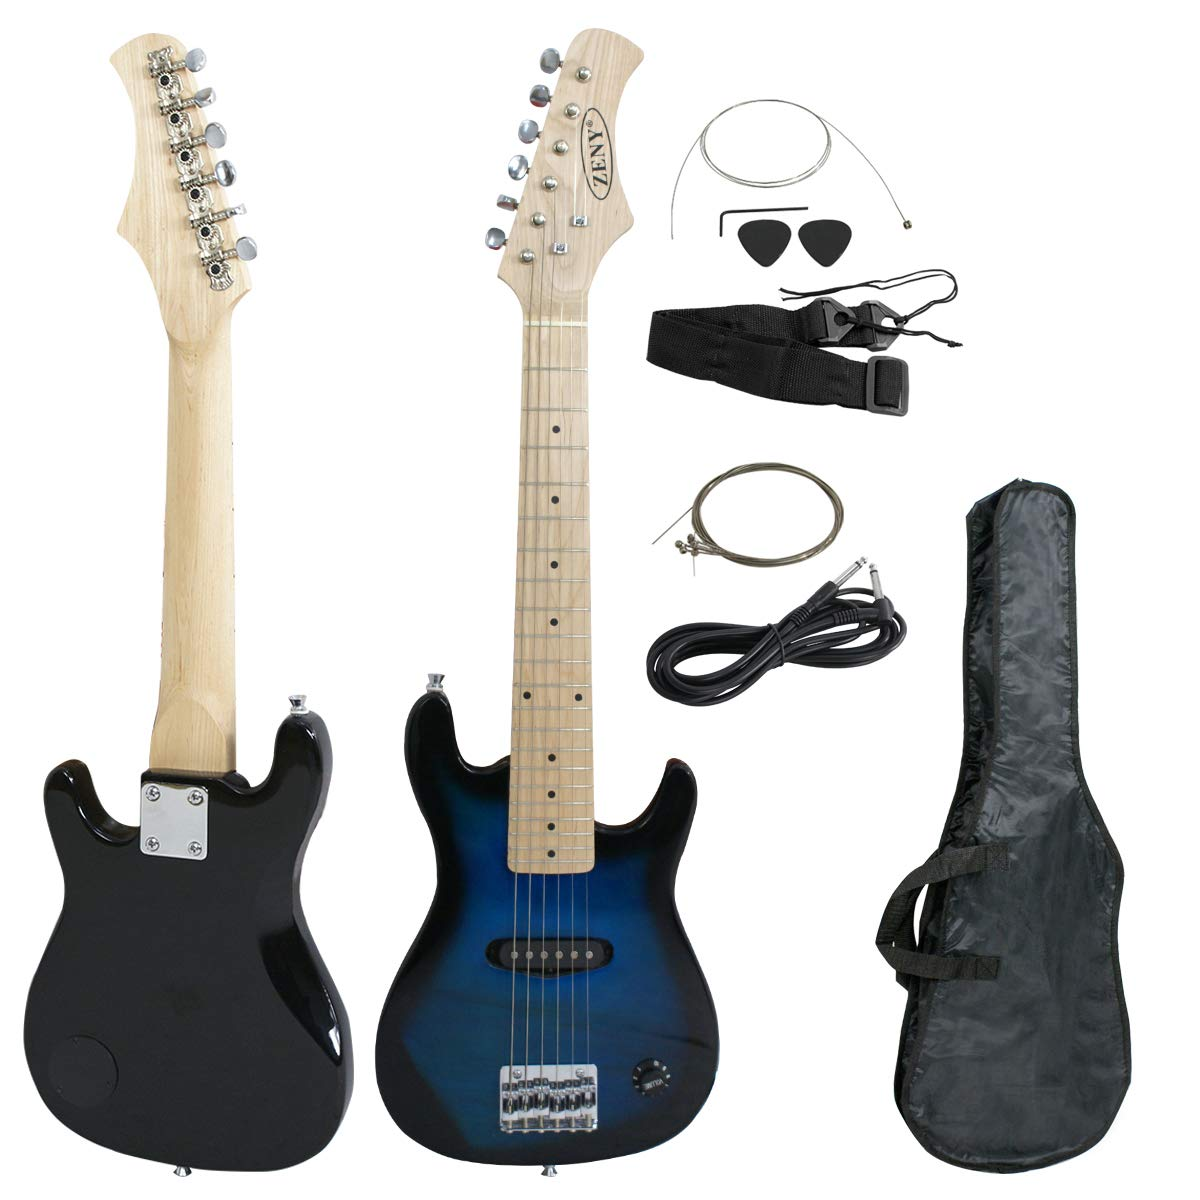 ZENY 30 Inch Kids Electric Guitar with Cable Cord shoulder strap New black